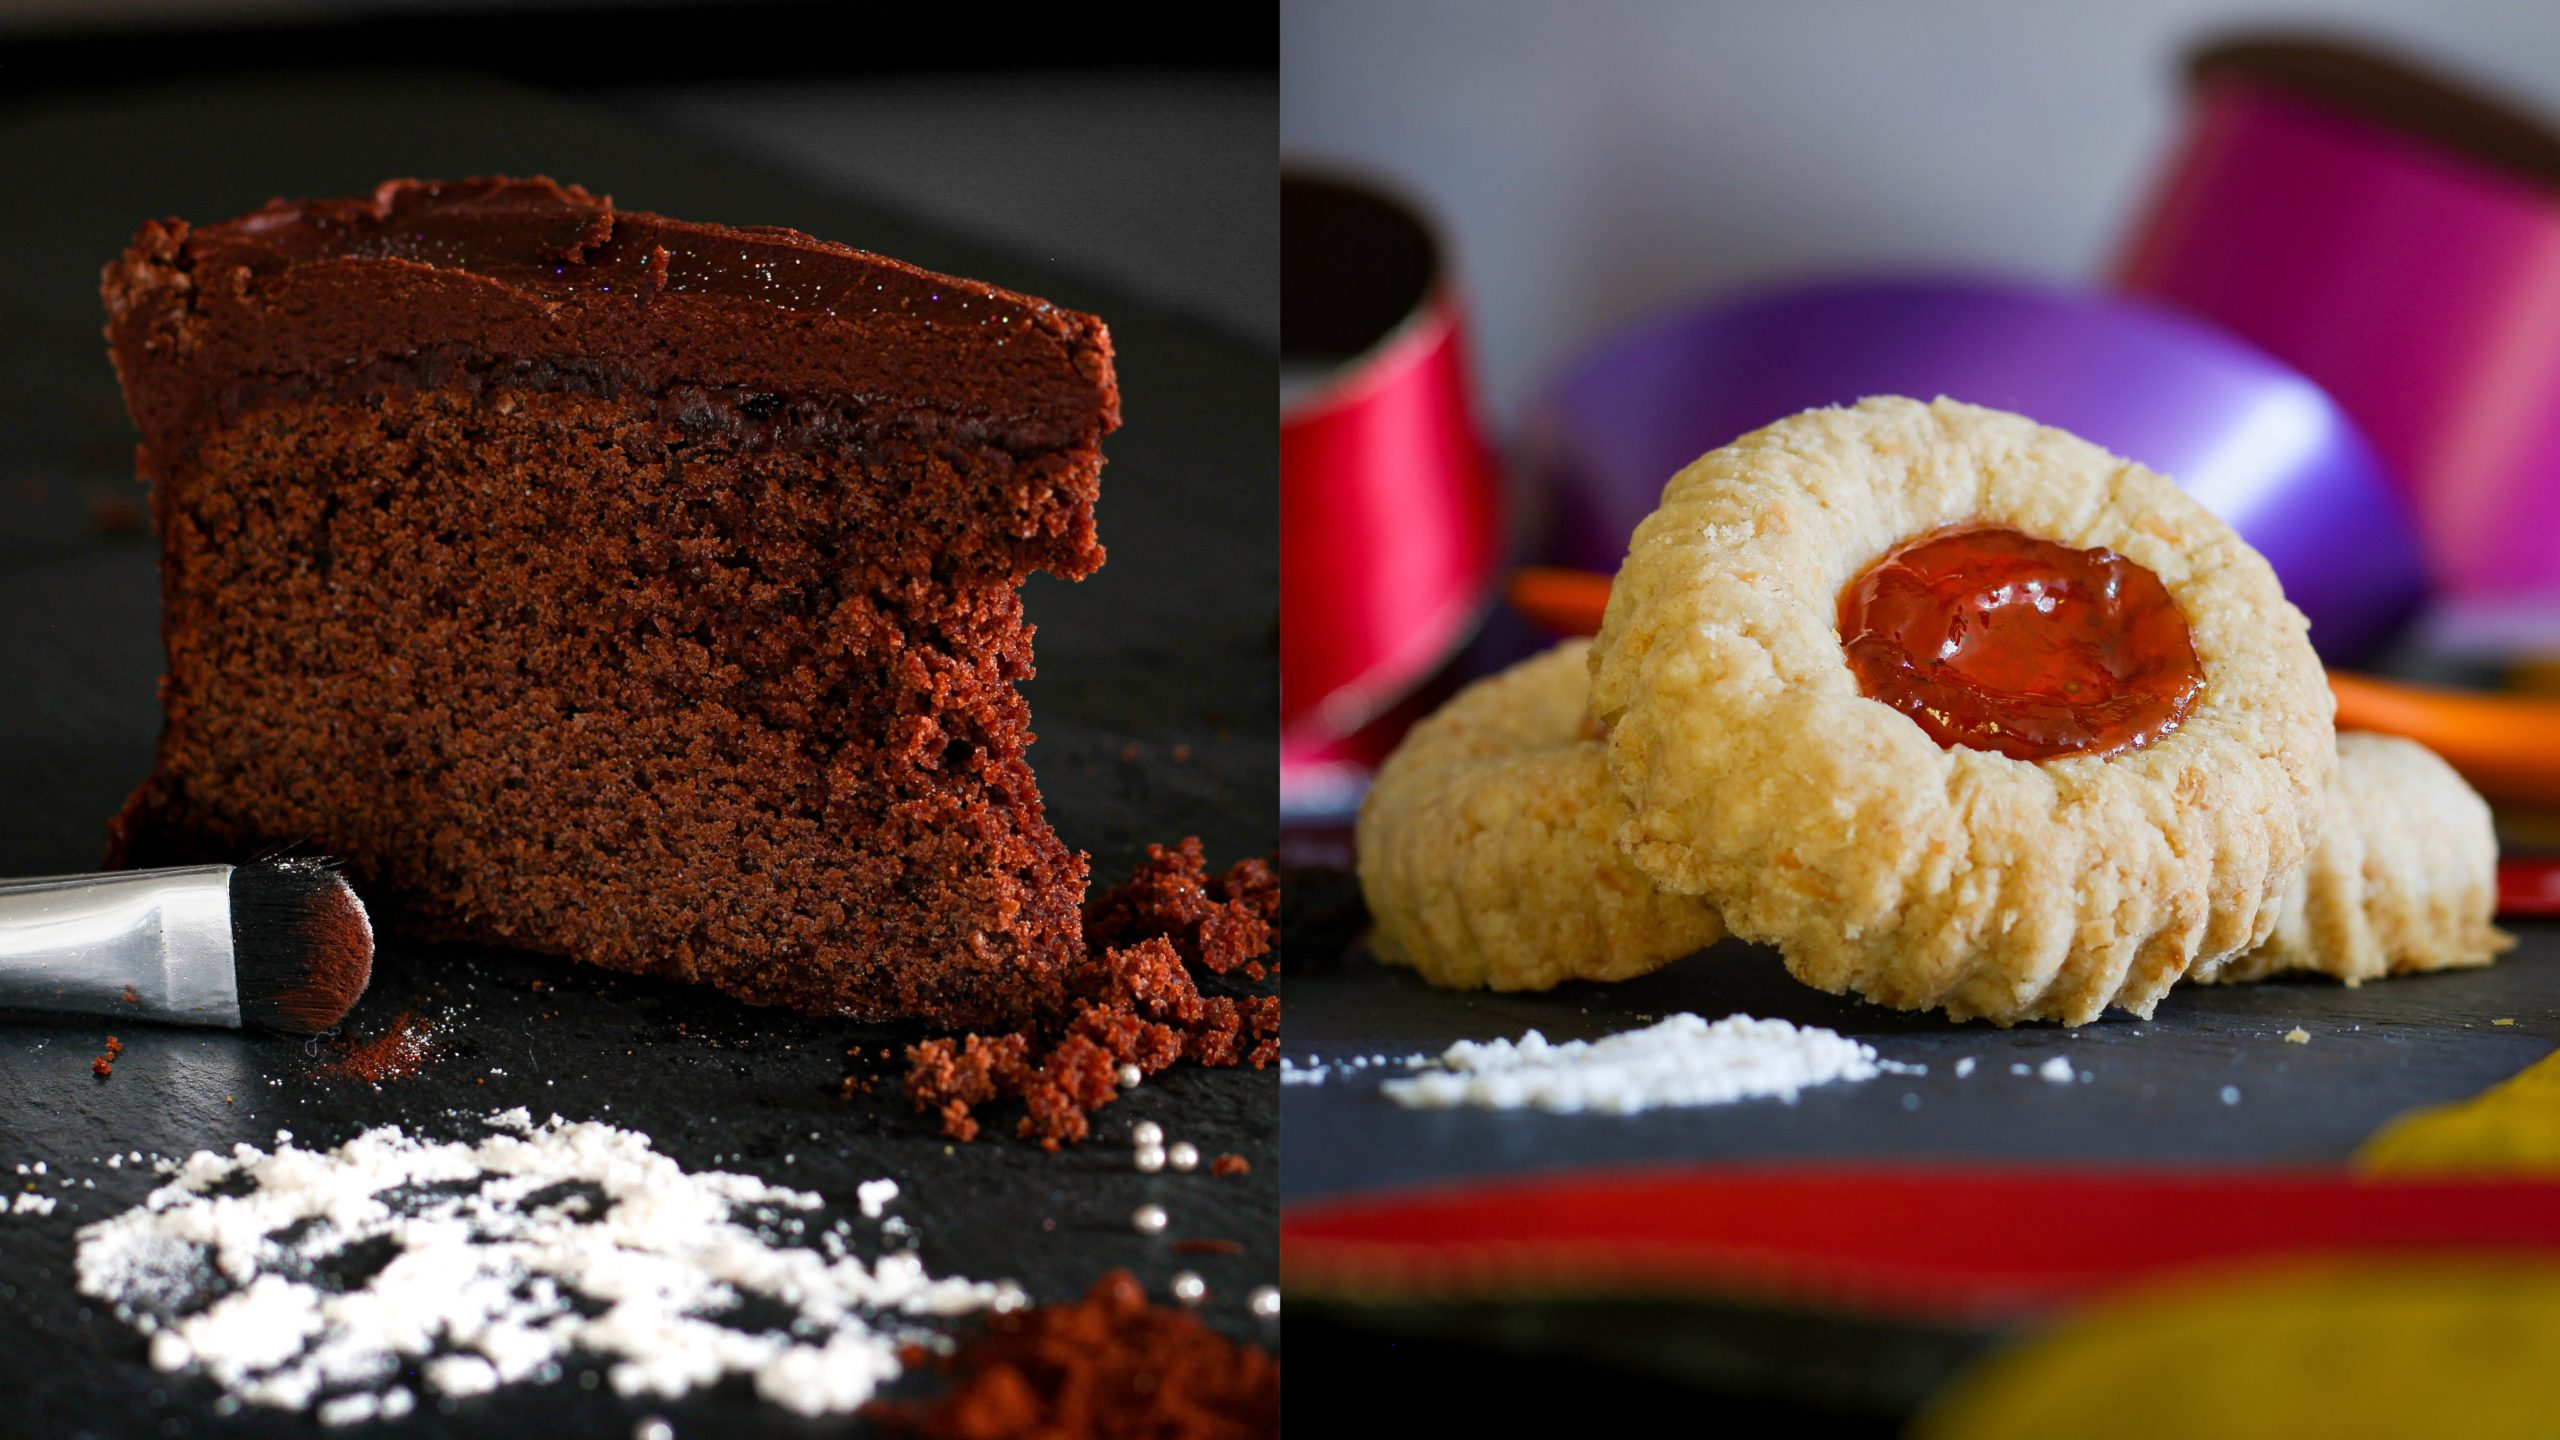 Win a selection of vegan friendly cakes and cookies Worth £100!